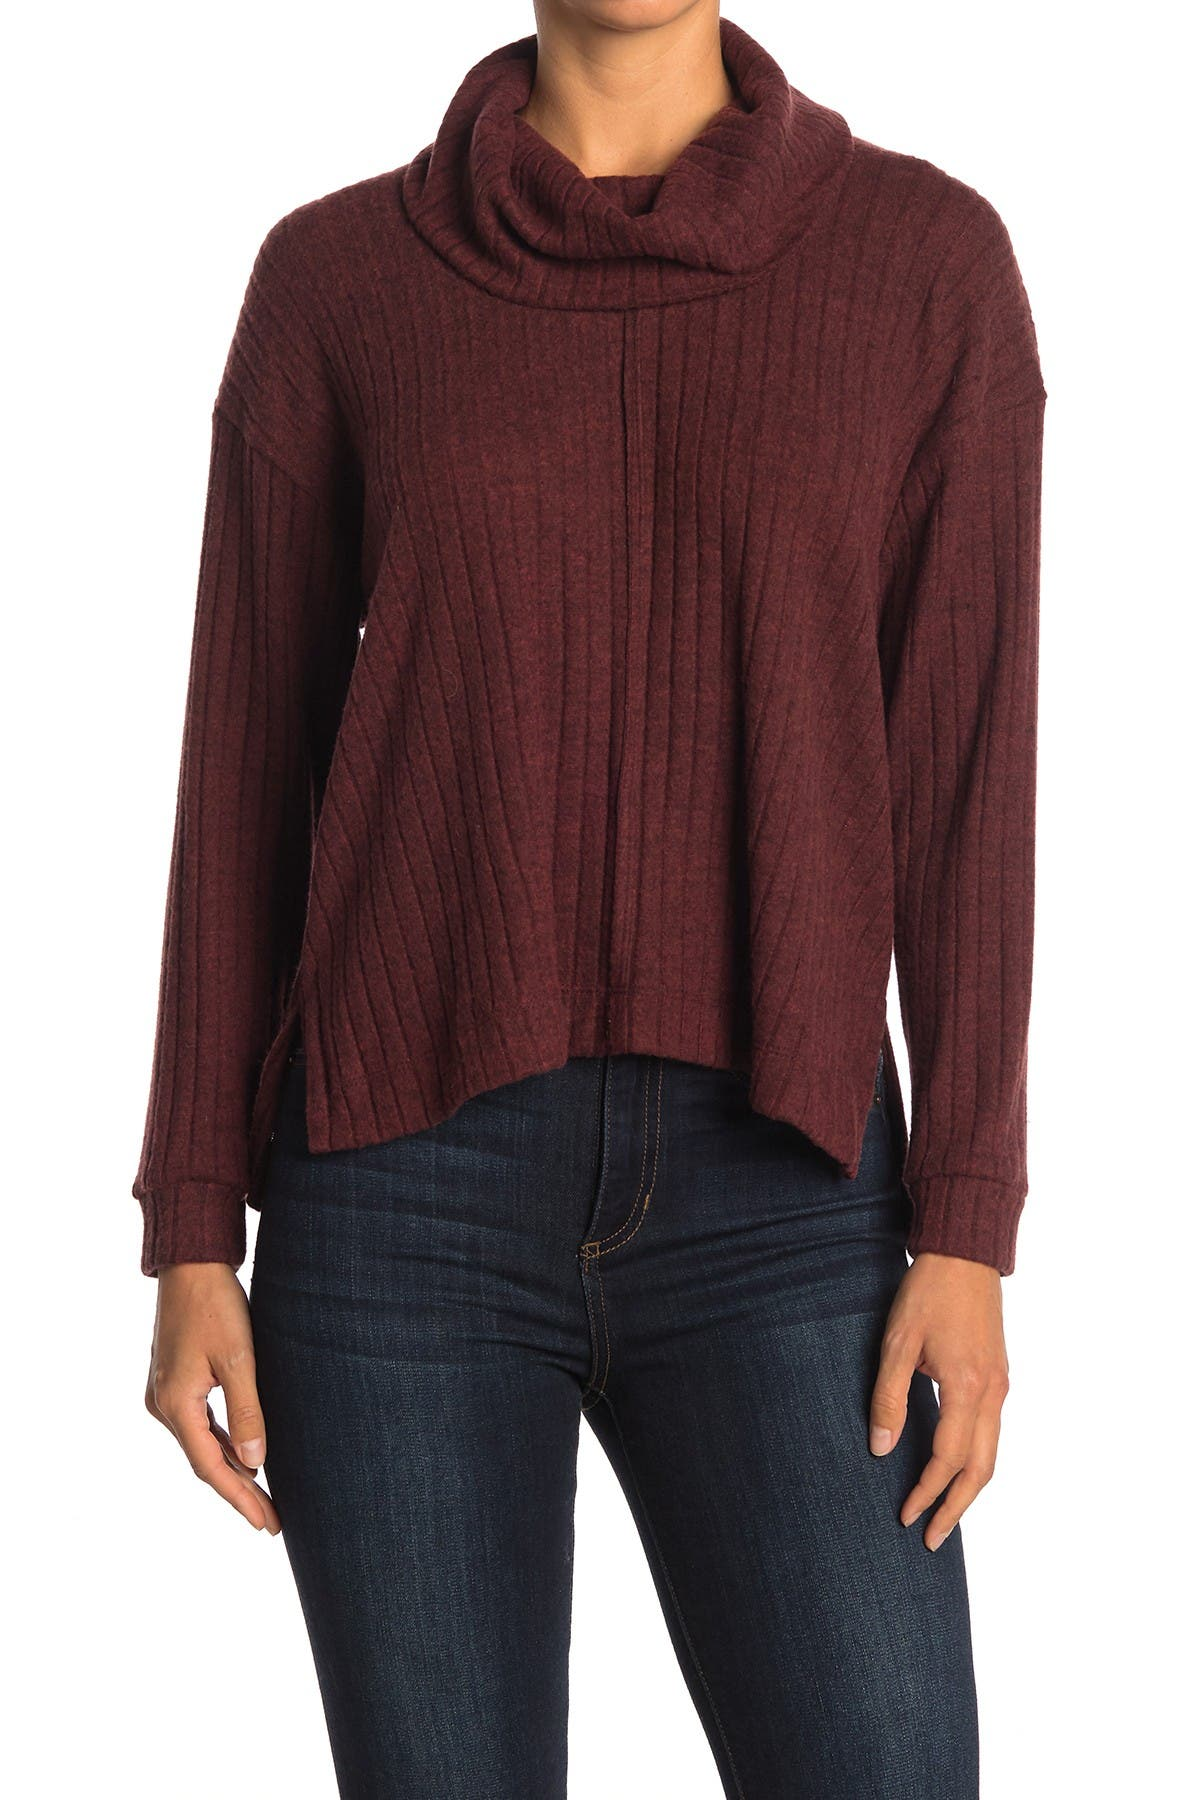 Image of Lush Ribbed Cowl Neck Top